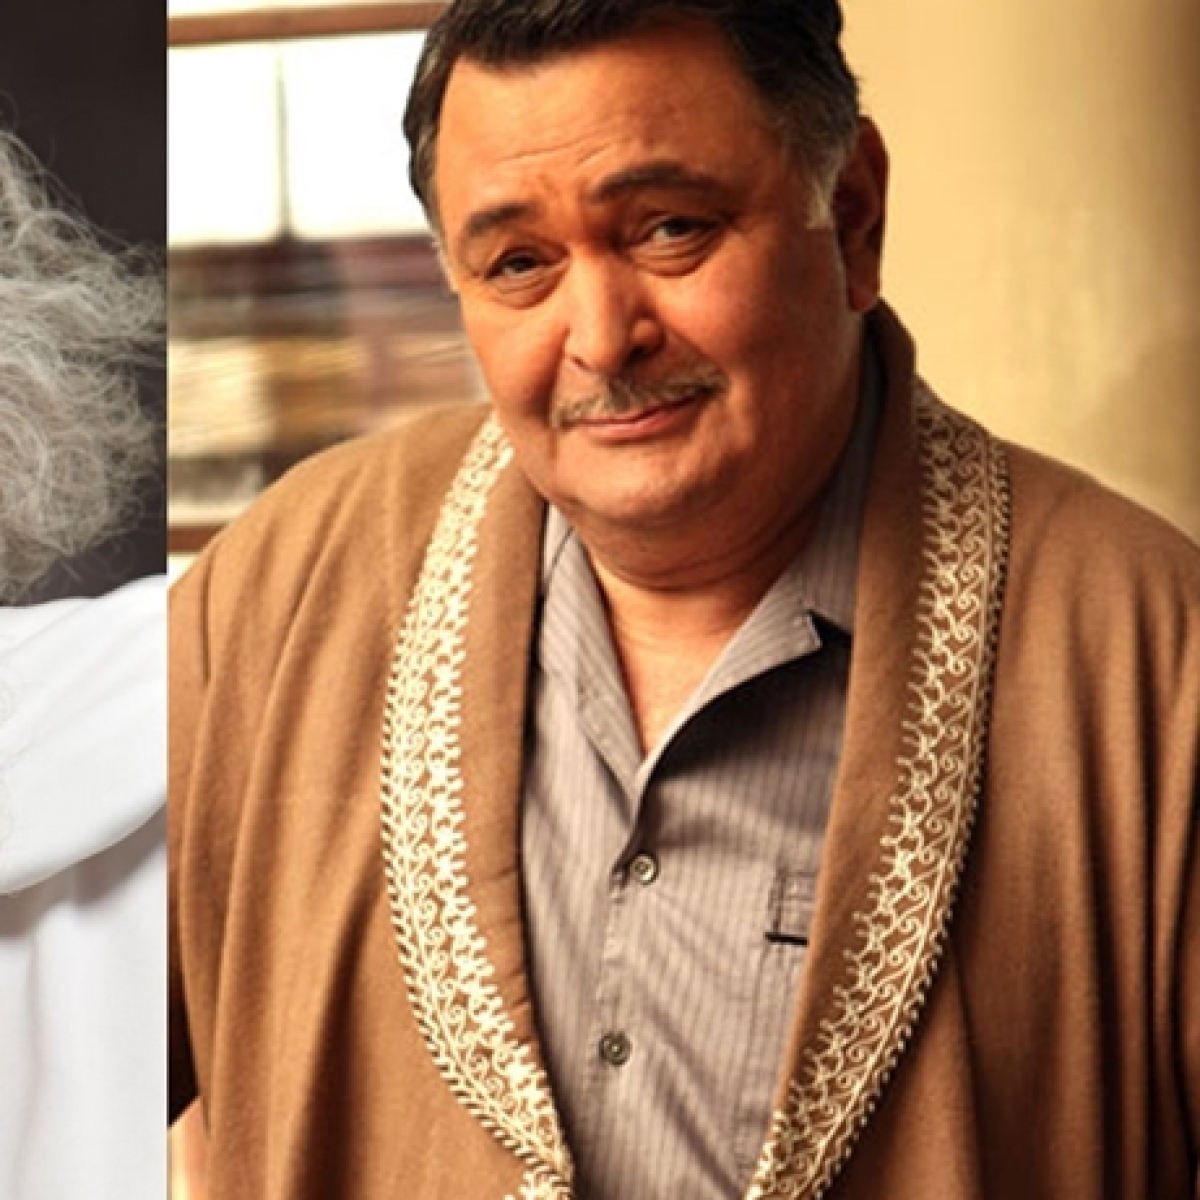 'What up with me and Bollywood this week': 'God' mourns Rishi Kapoor's death a day after Irrfan Khan